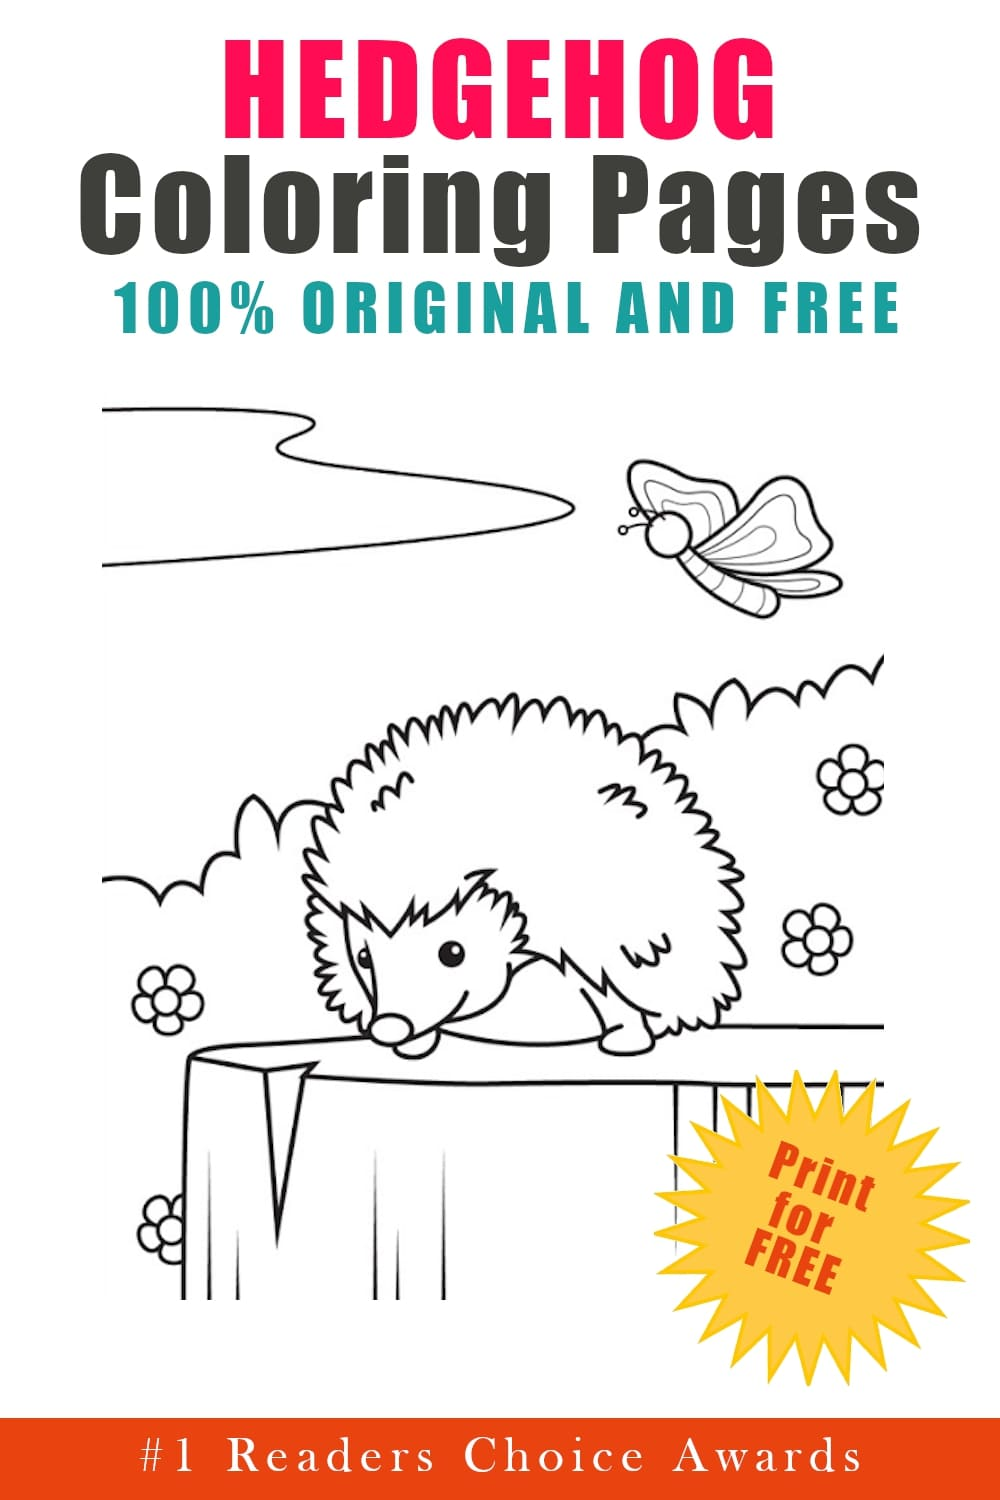 original and free hedgehog coloring pages